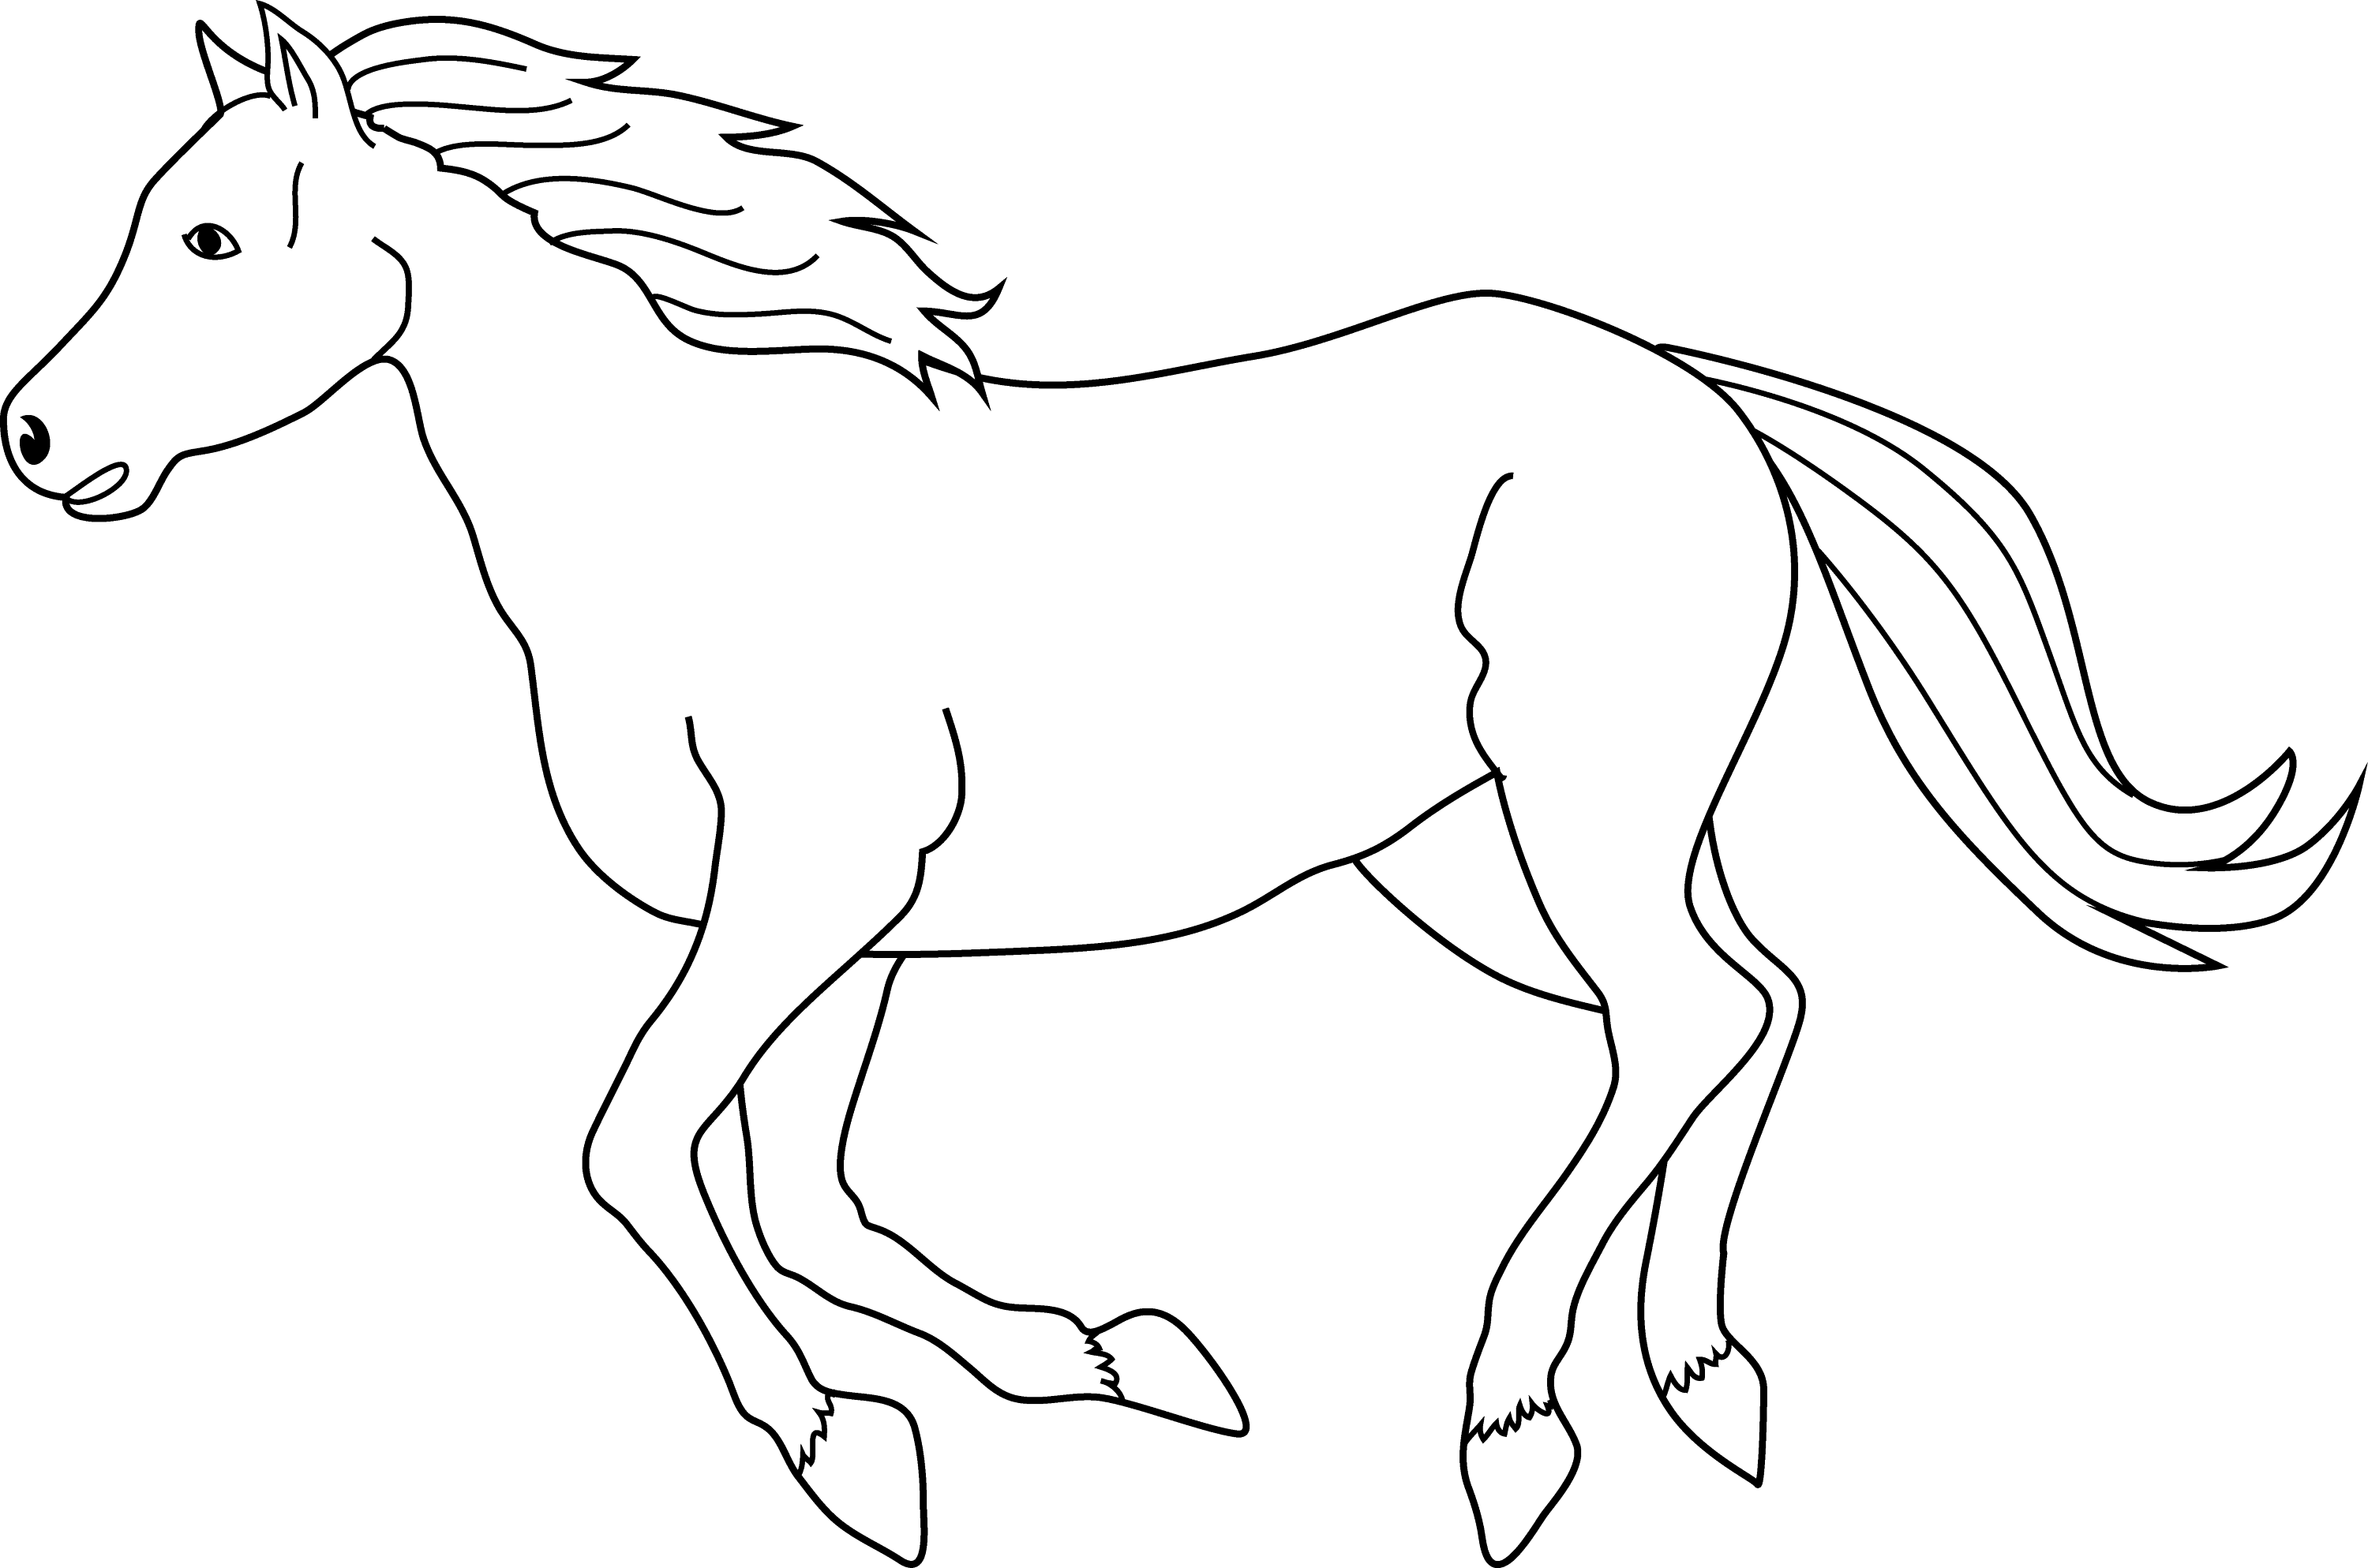 horse colouring picture horse coloring pages preschool and kindergarten horse picture colouring